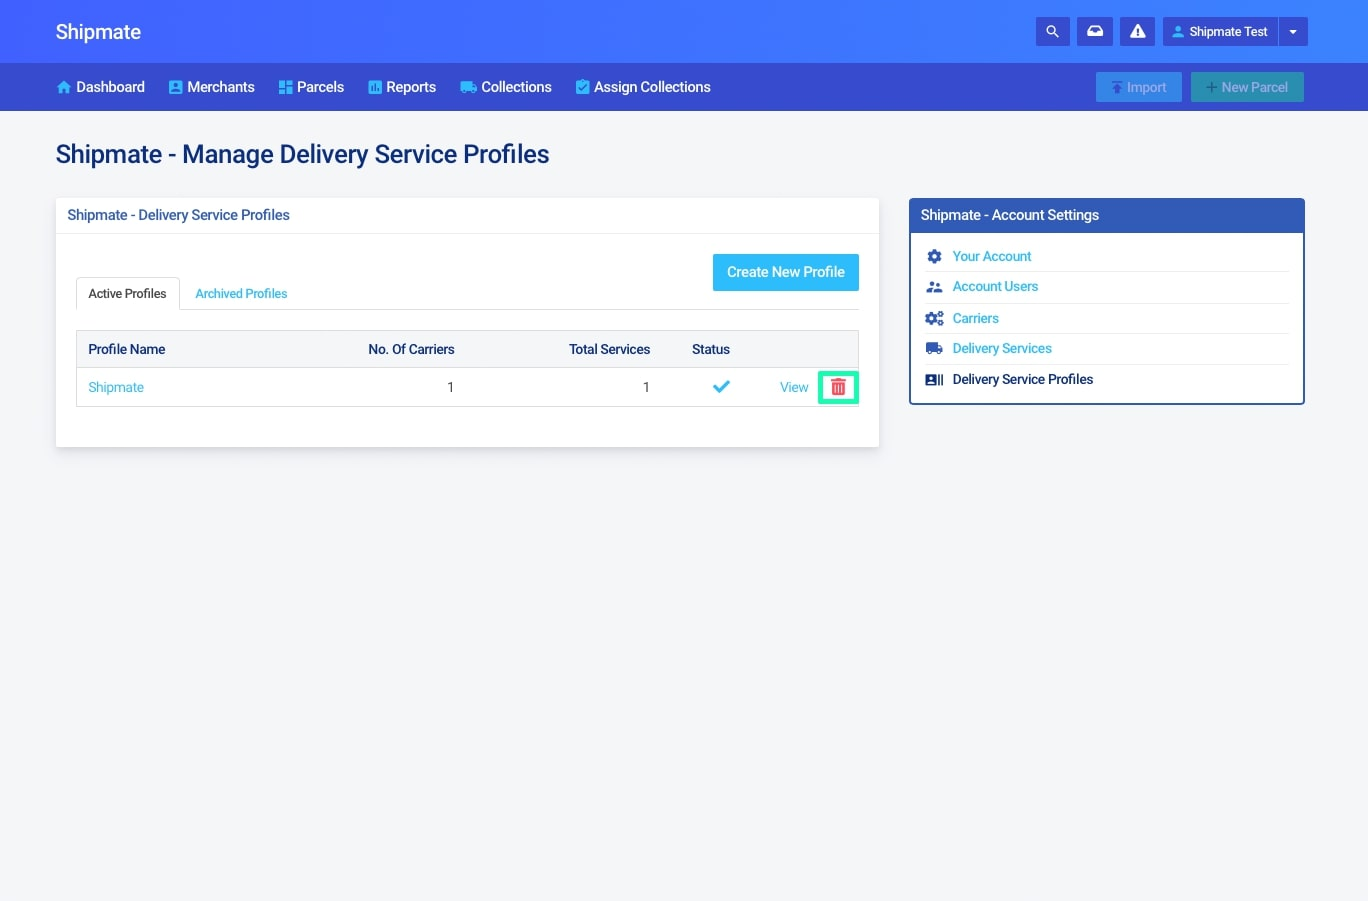 Shipmate - 3PL - Archive a Delivery Service Profile